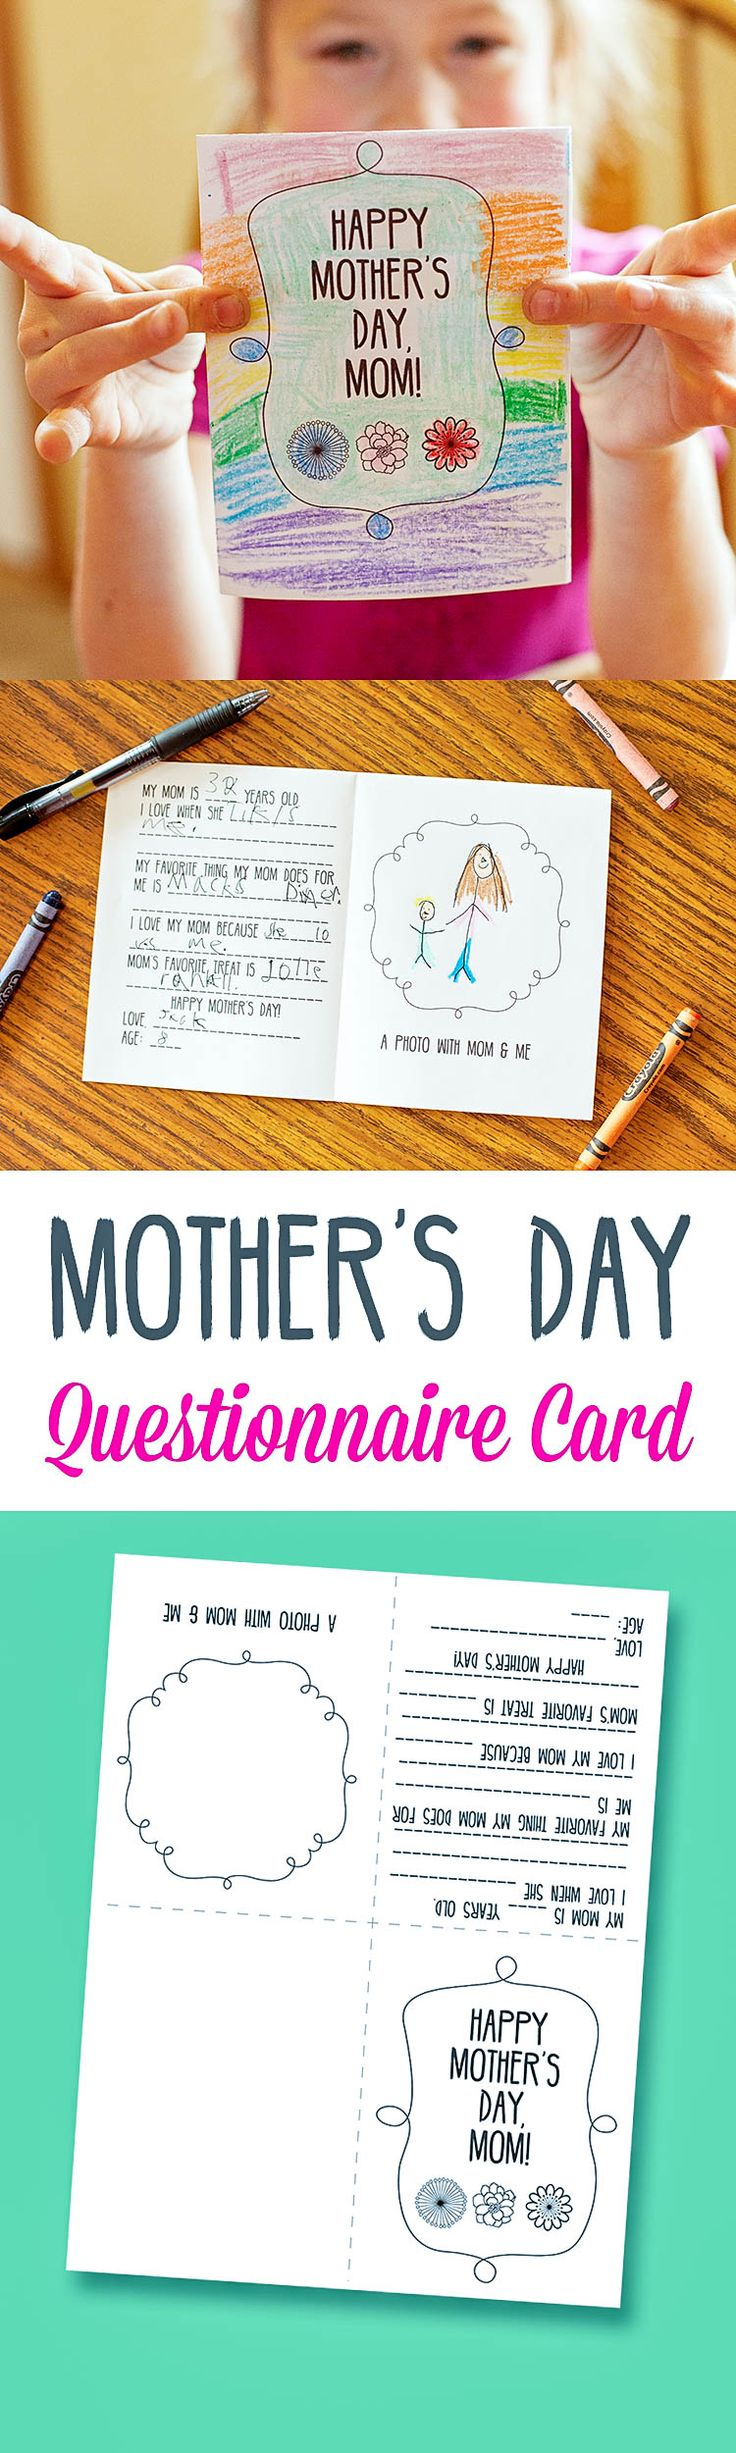 best ideas about questionnaire enseigne mother s day questionnaire fill in card printable cute idea for the kids to make